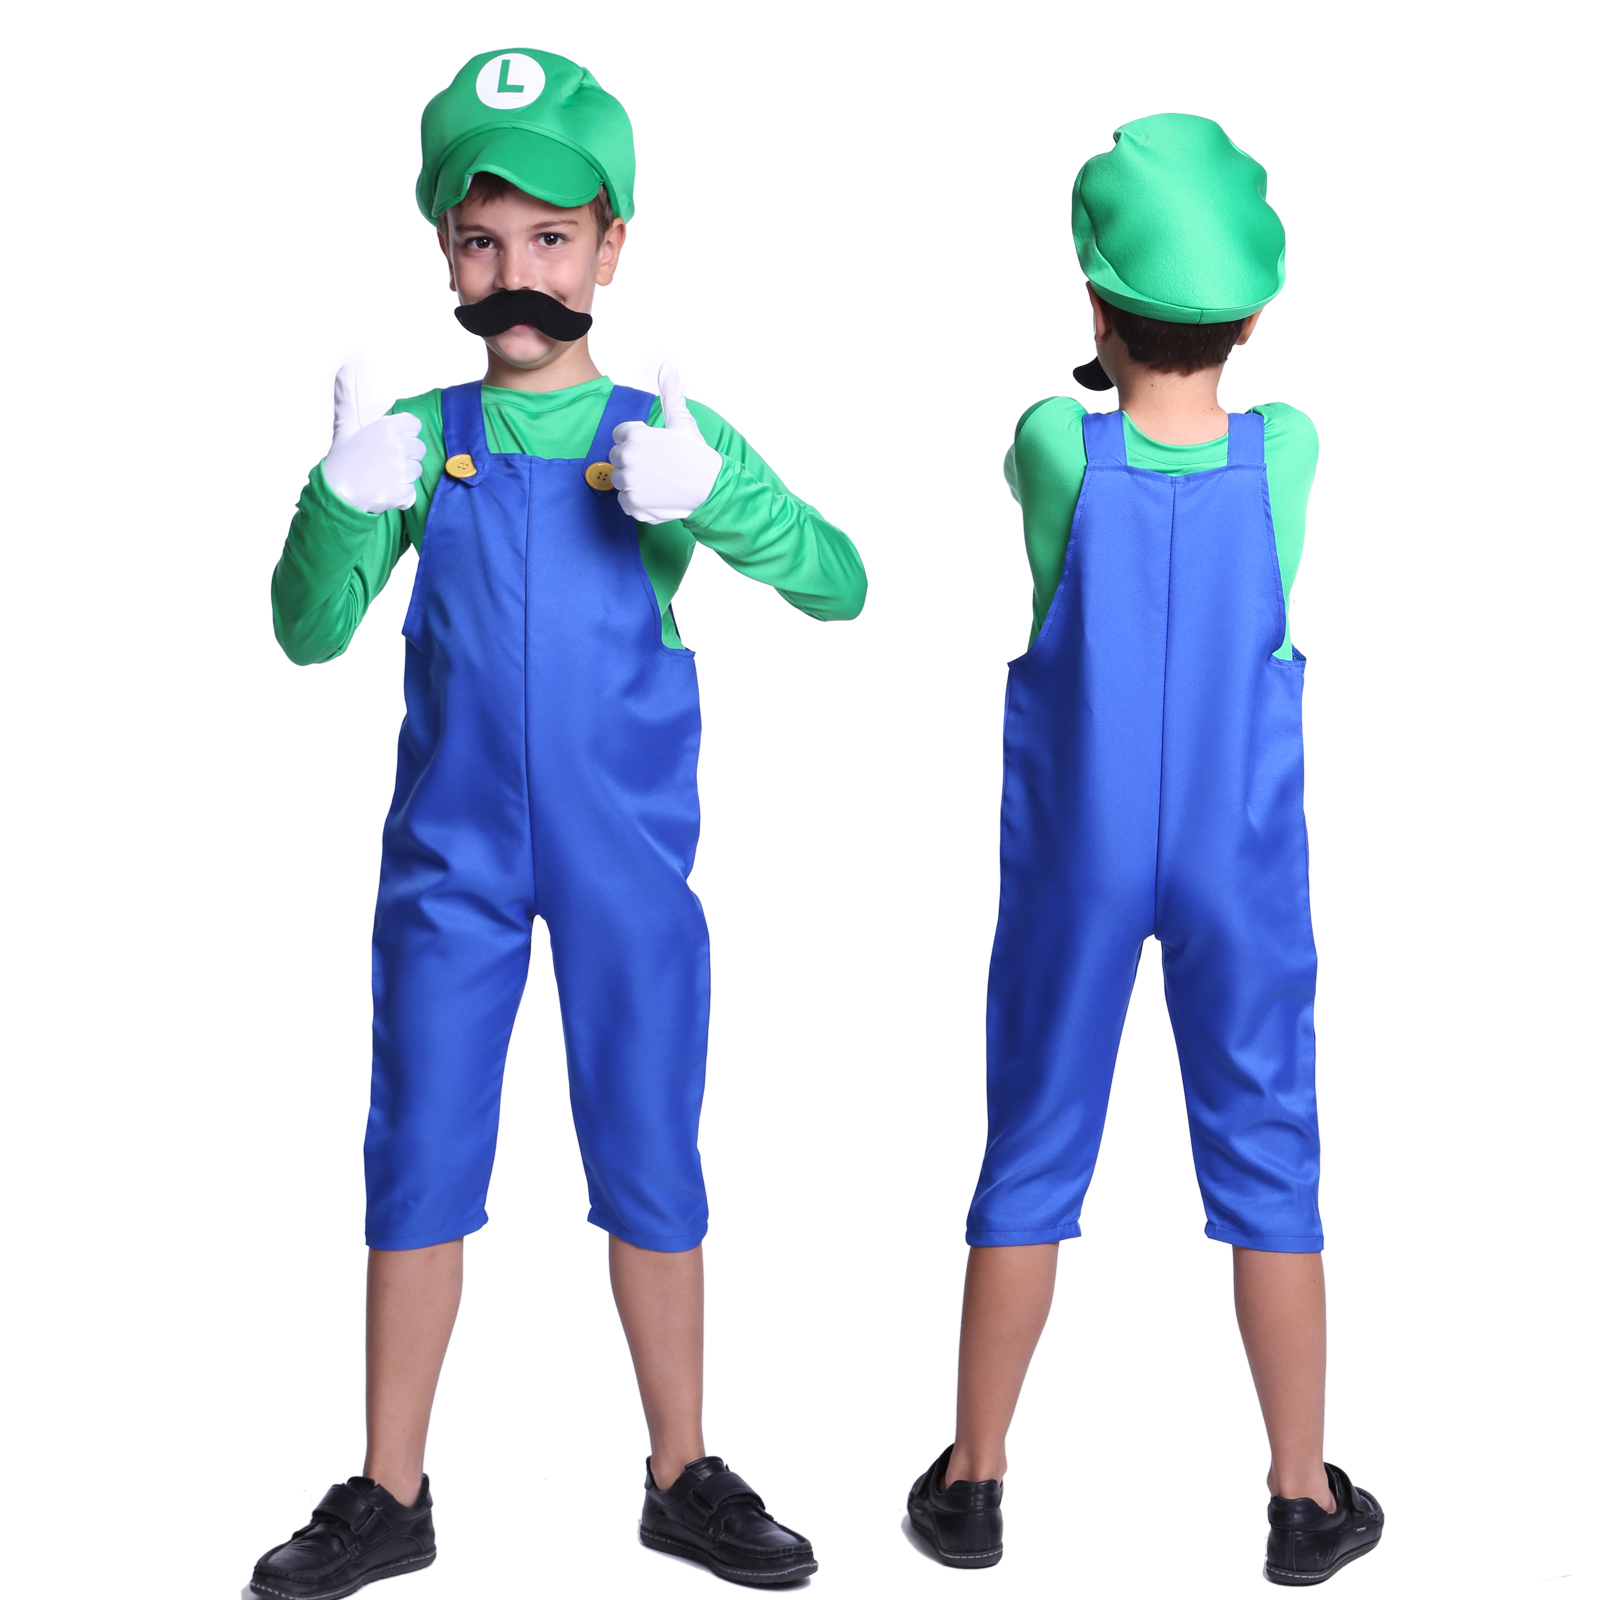 superhero mario luigi bro plumber workman boys oversize overall cosplay outfit ebay. Black Bedroom Furniture Sets. Home Design Ideas